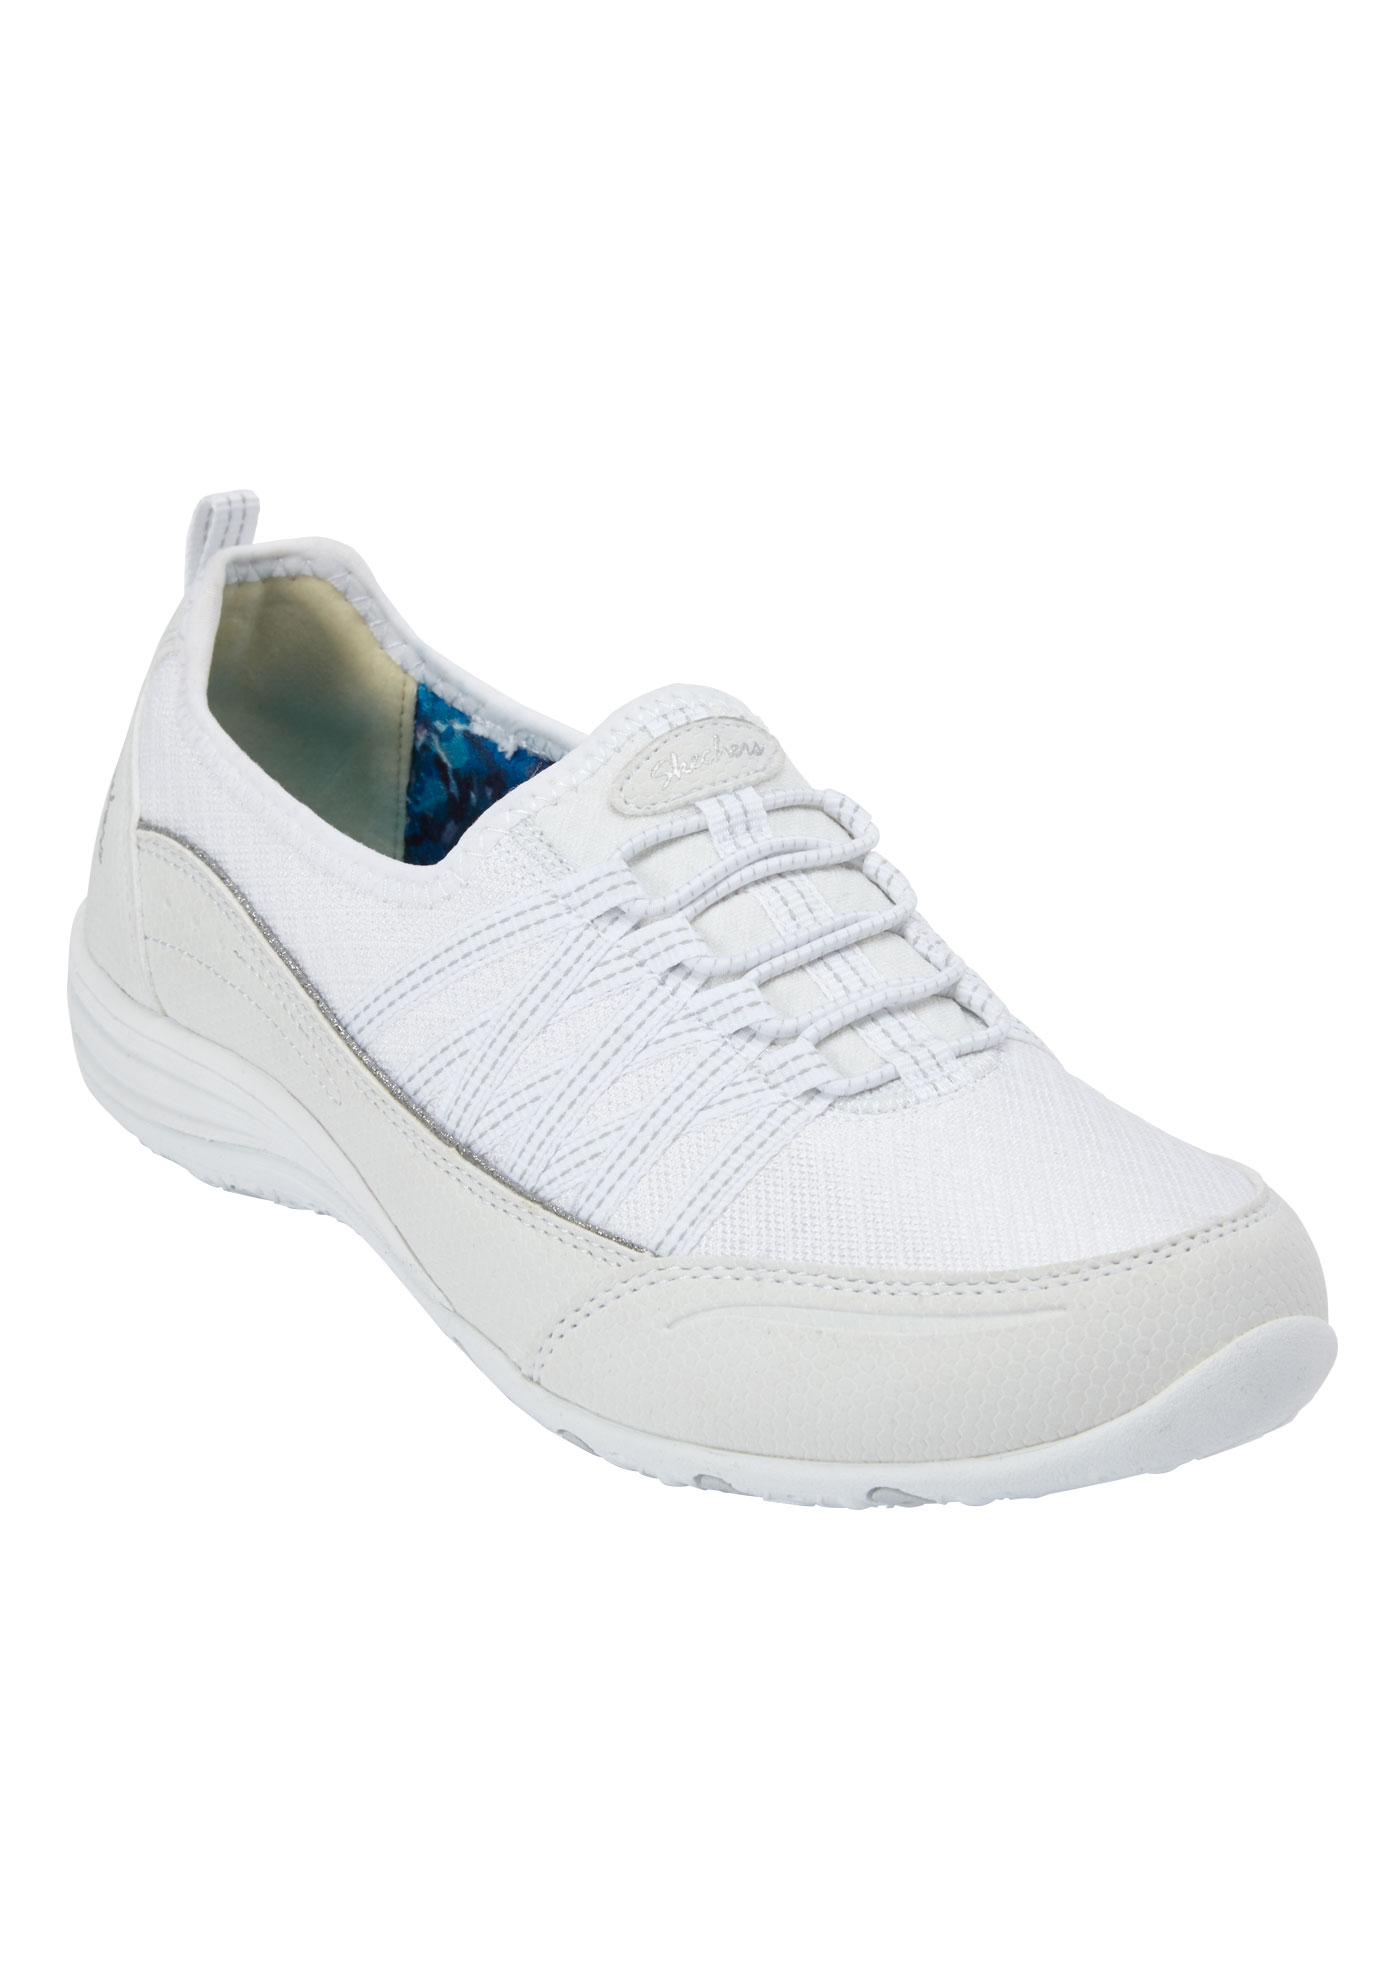 Go Sneakers by Skechers®, WHITE MEDIUM, hi-res